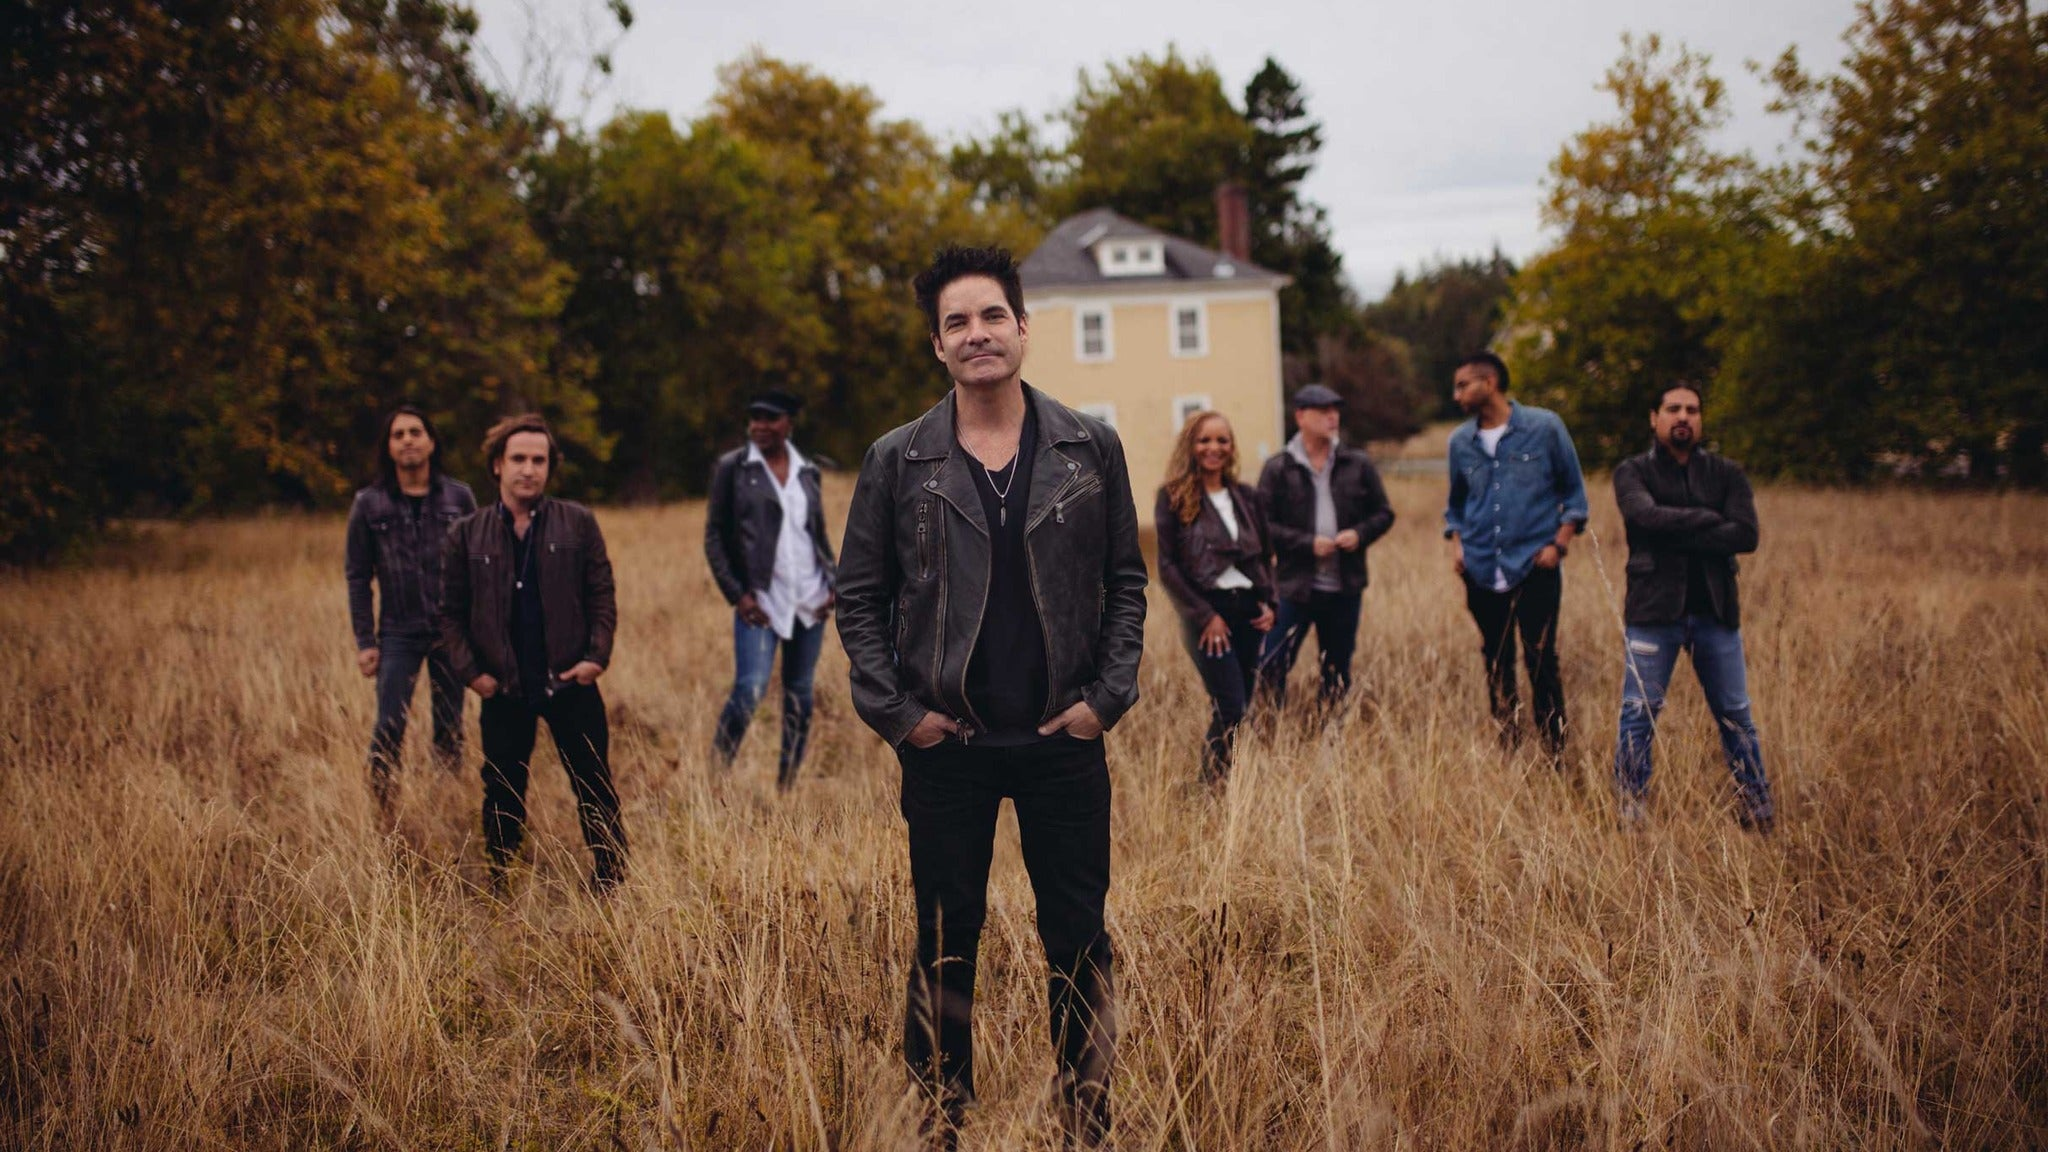 Train: Play That Song Tour at Blossom Music Center